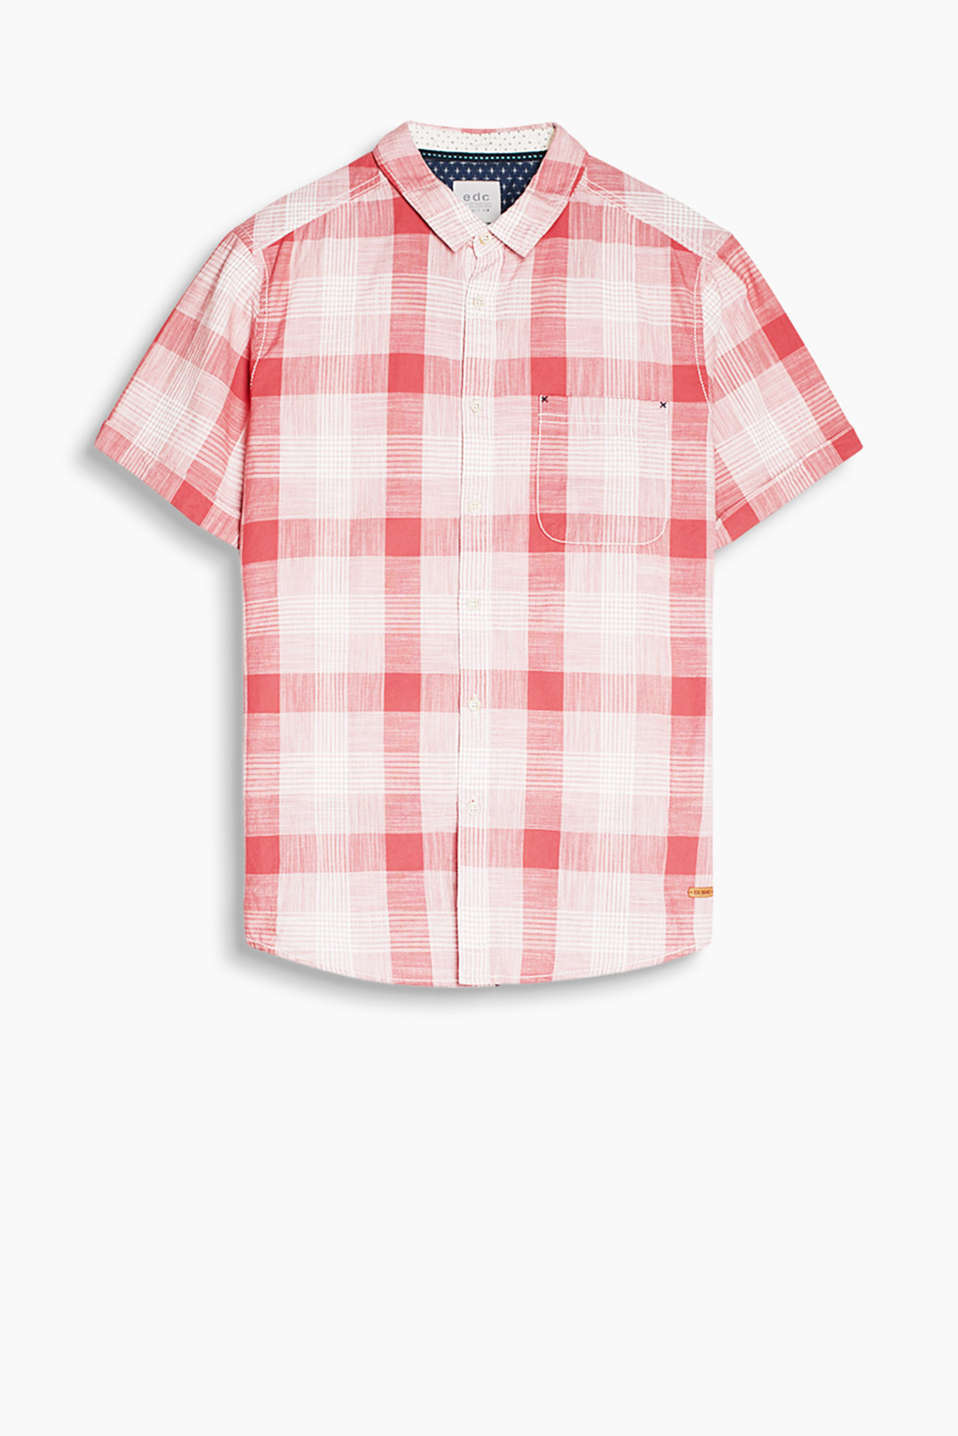 Pure cotton shirt with a rustic glencheck pattern and a patch breast pocket